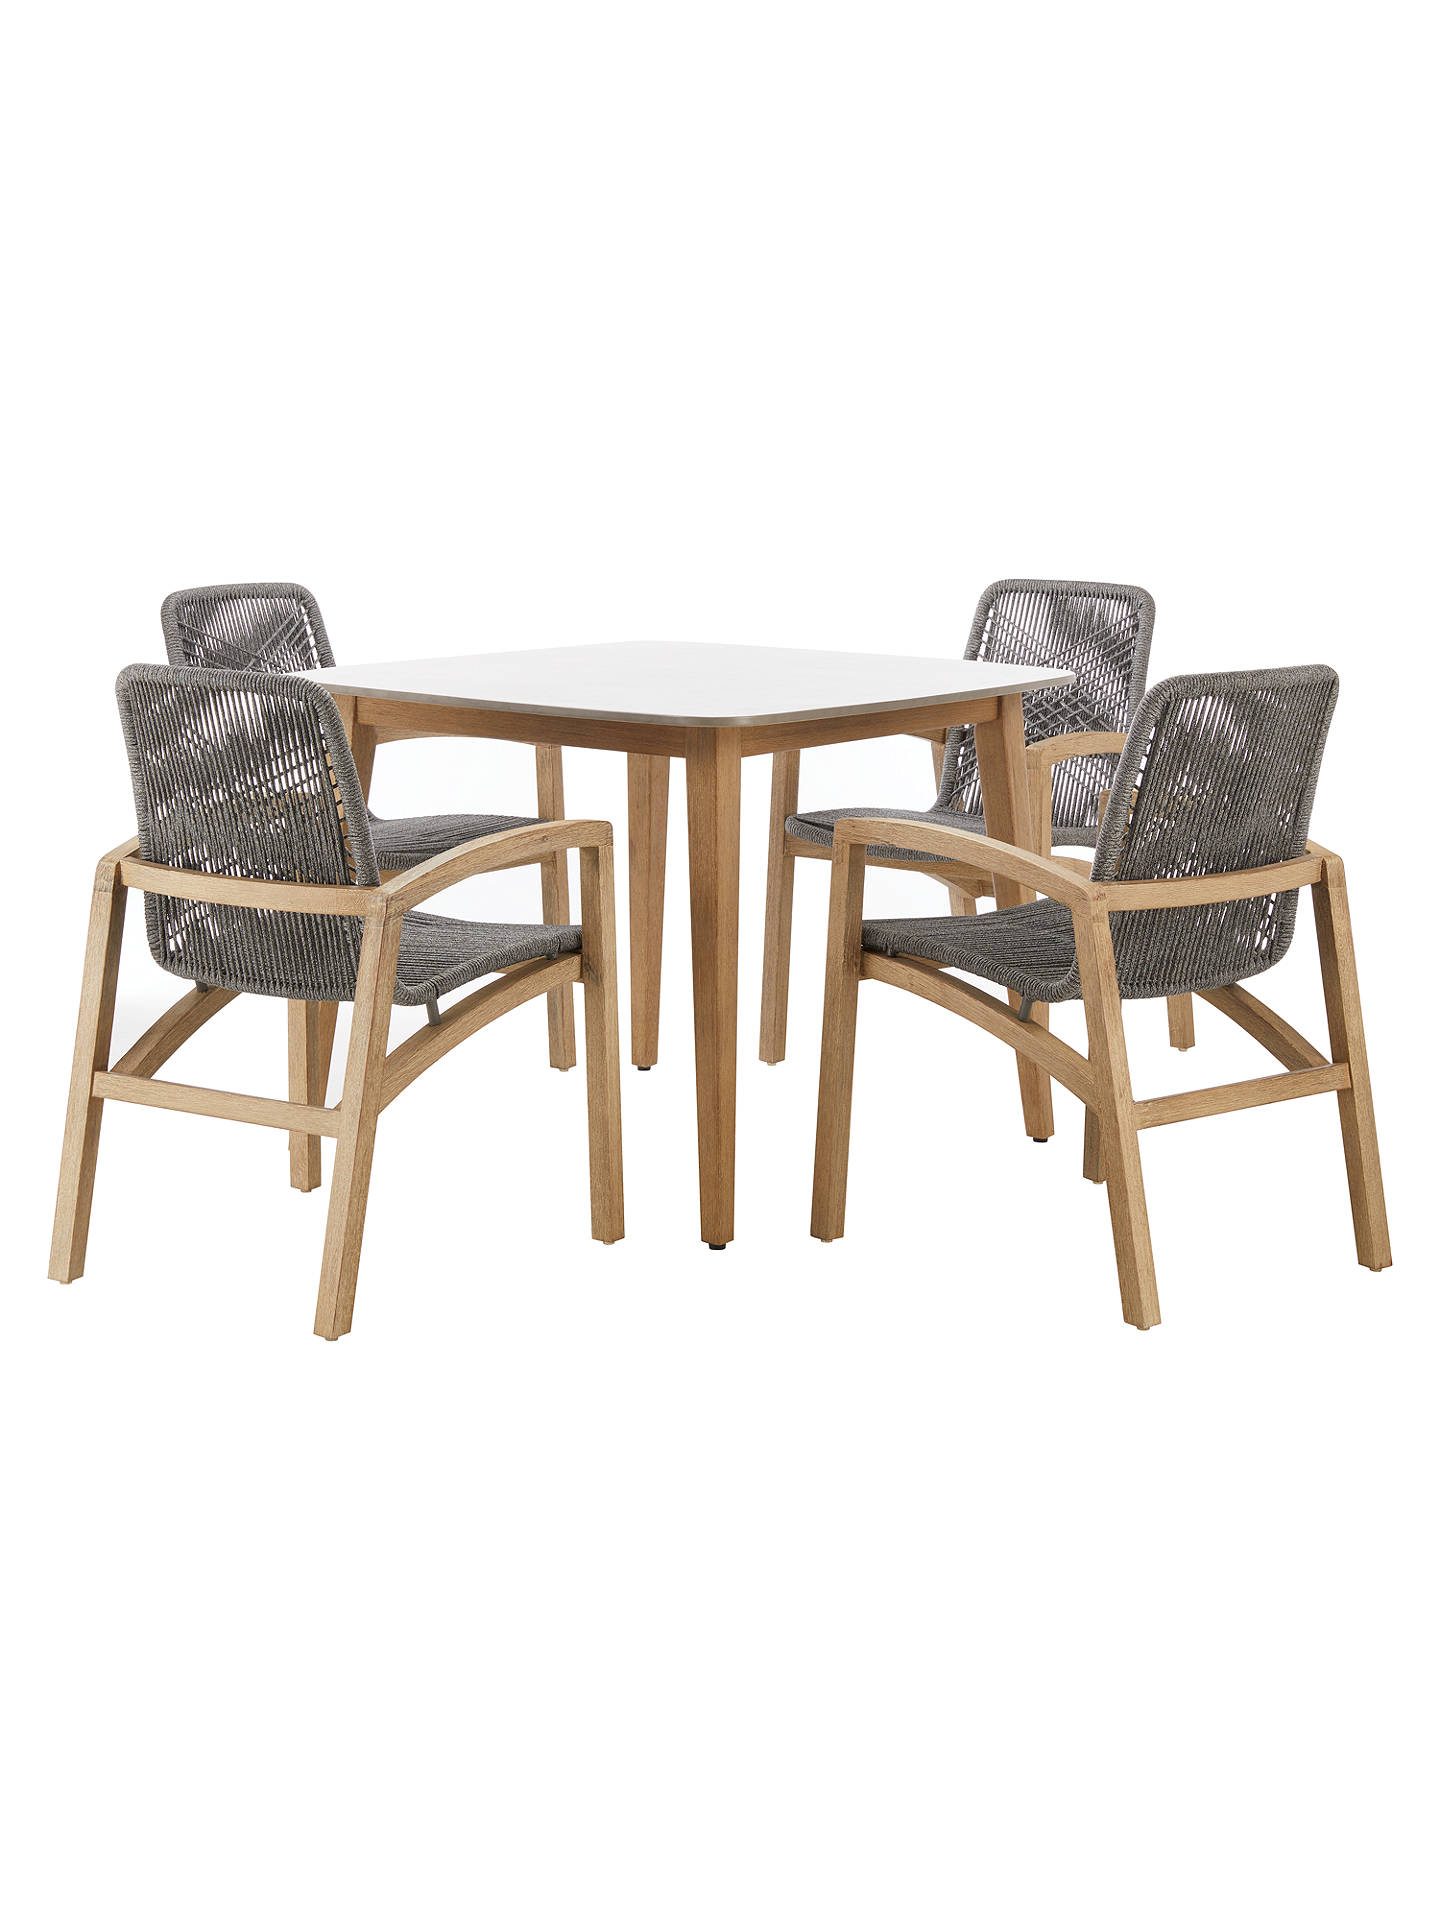 John Lewis Partners Leia 4 Seater Square Outdoor Dining Table Fsc